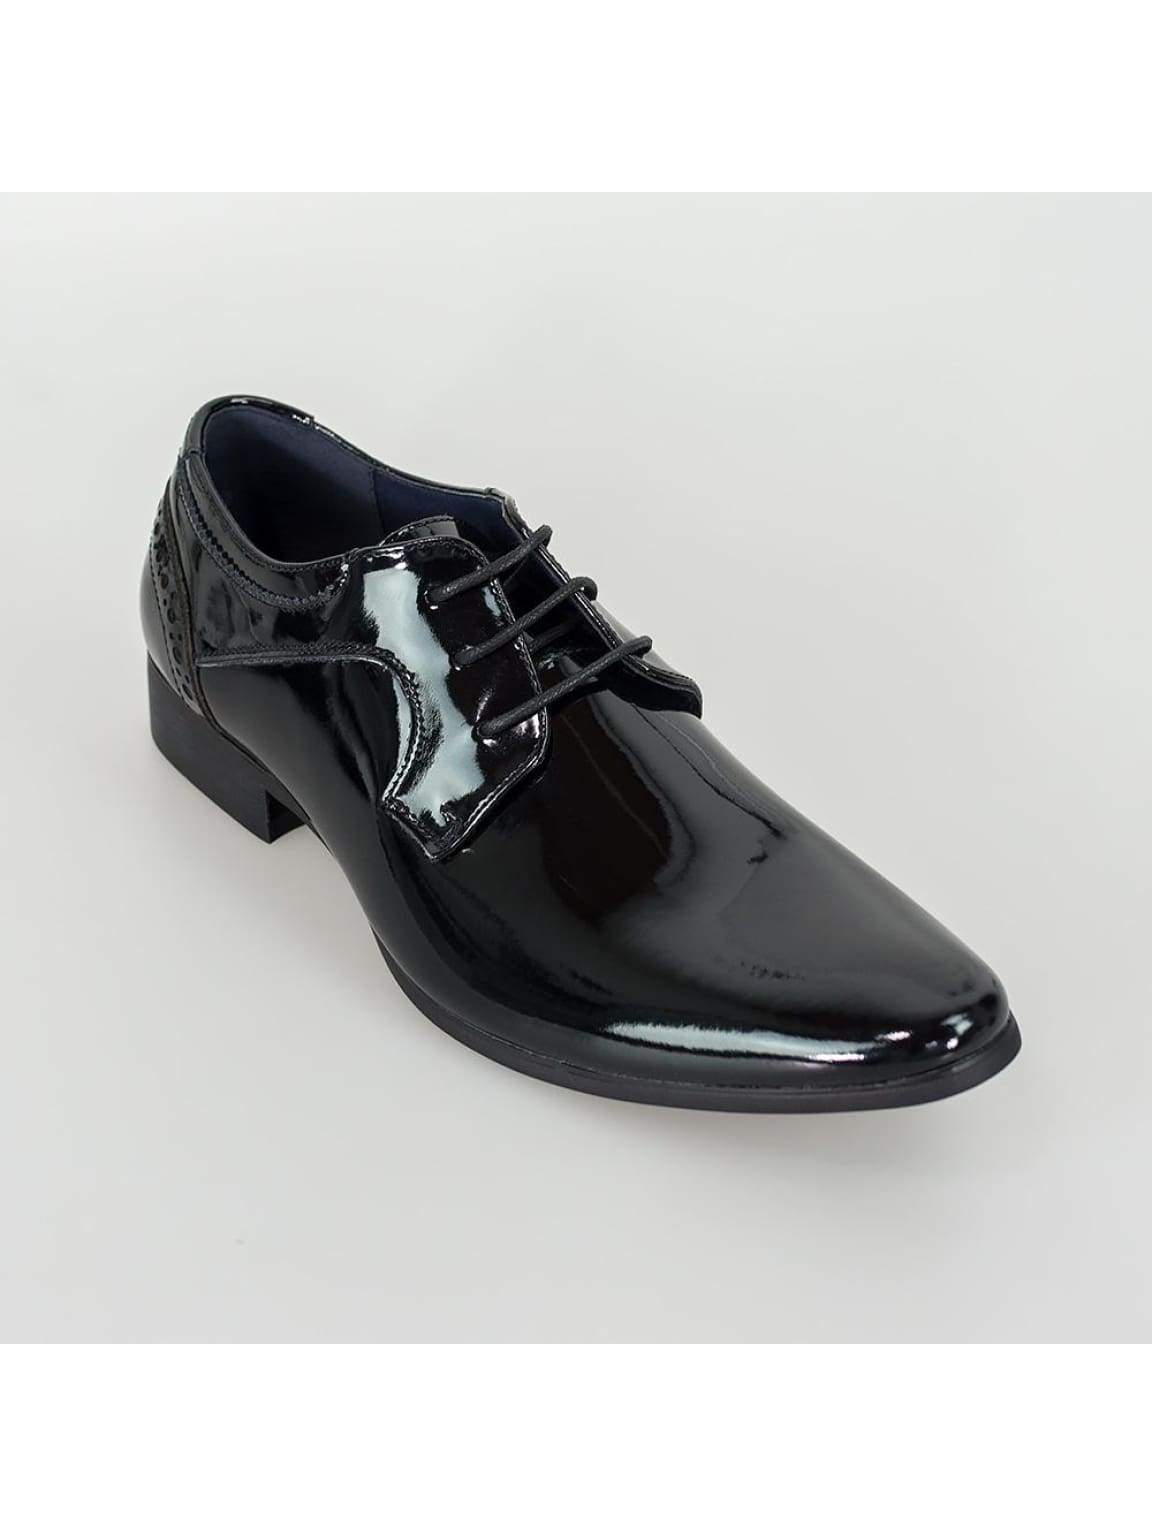 Cavani Scott Black Patent Mens Leather Shoes - Shoes